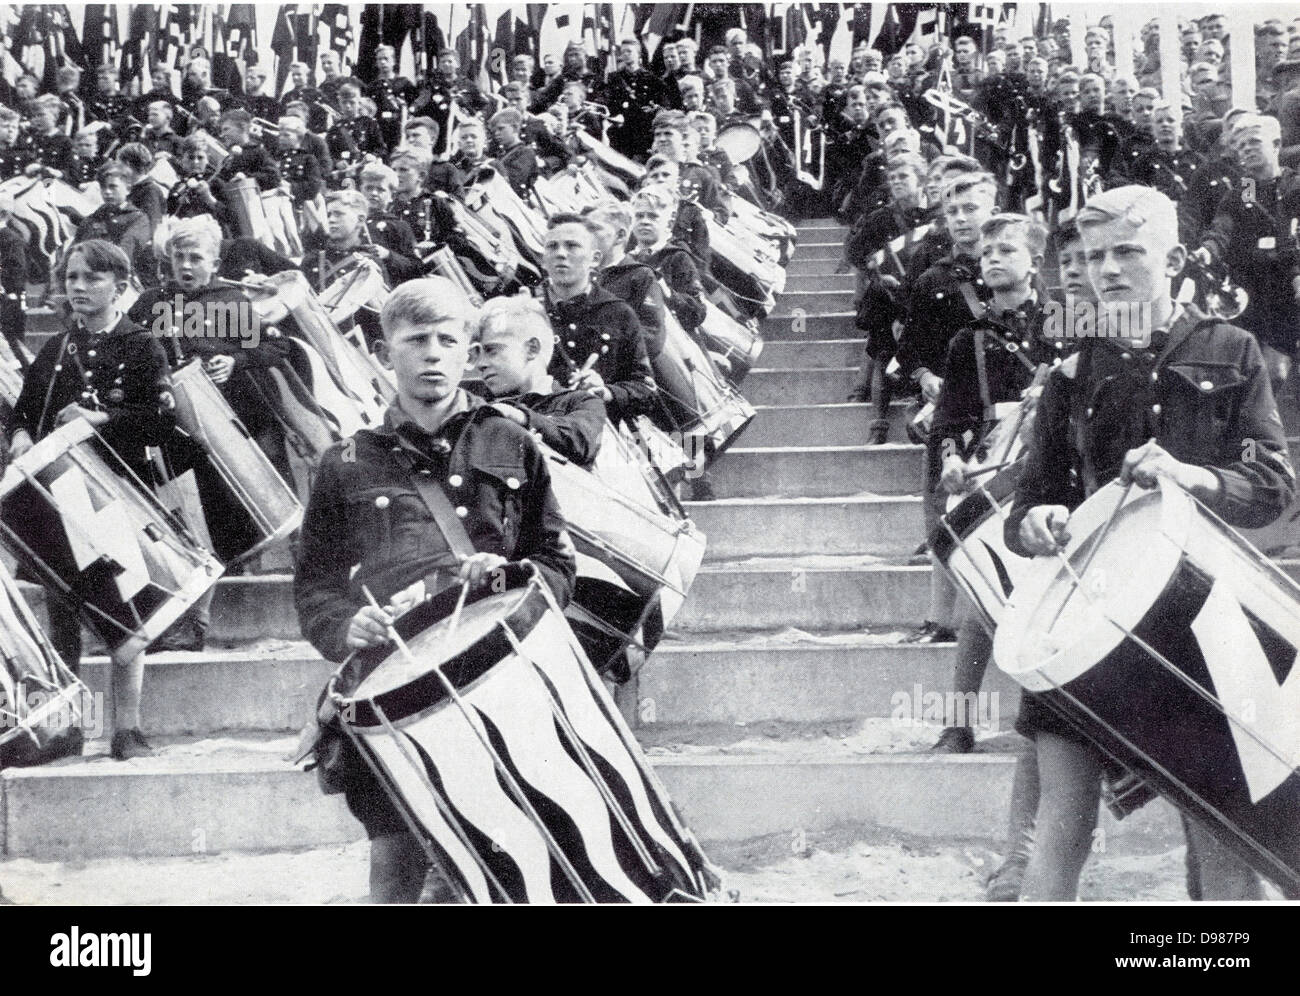 Hitler Youth at a Nazi rally, 1930s. Massed band of boy drummers. - Stock Image